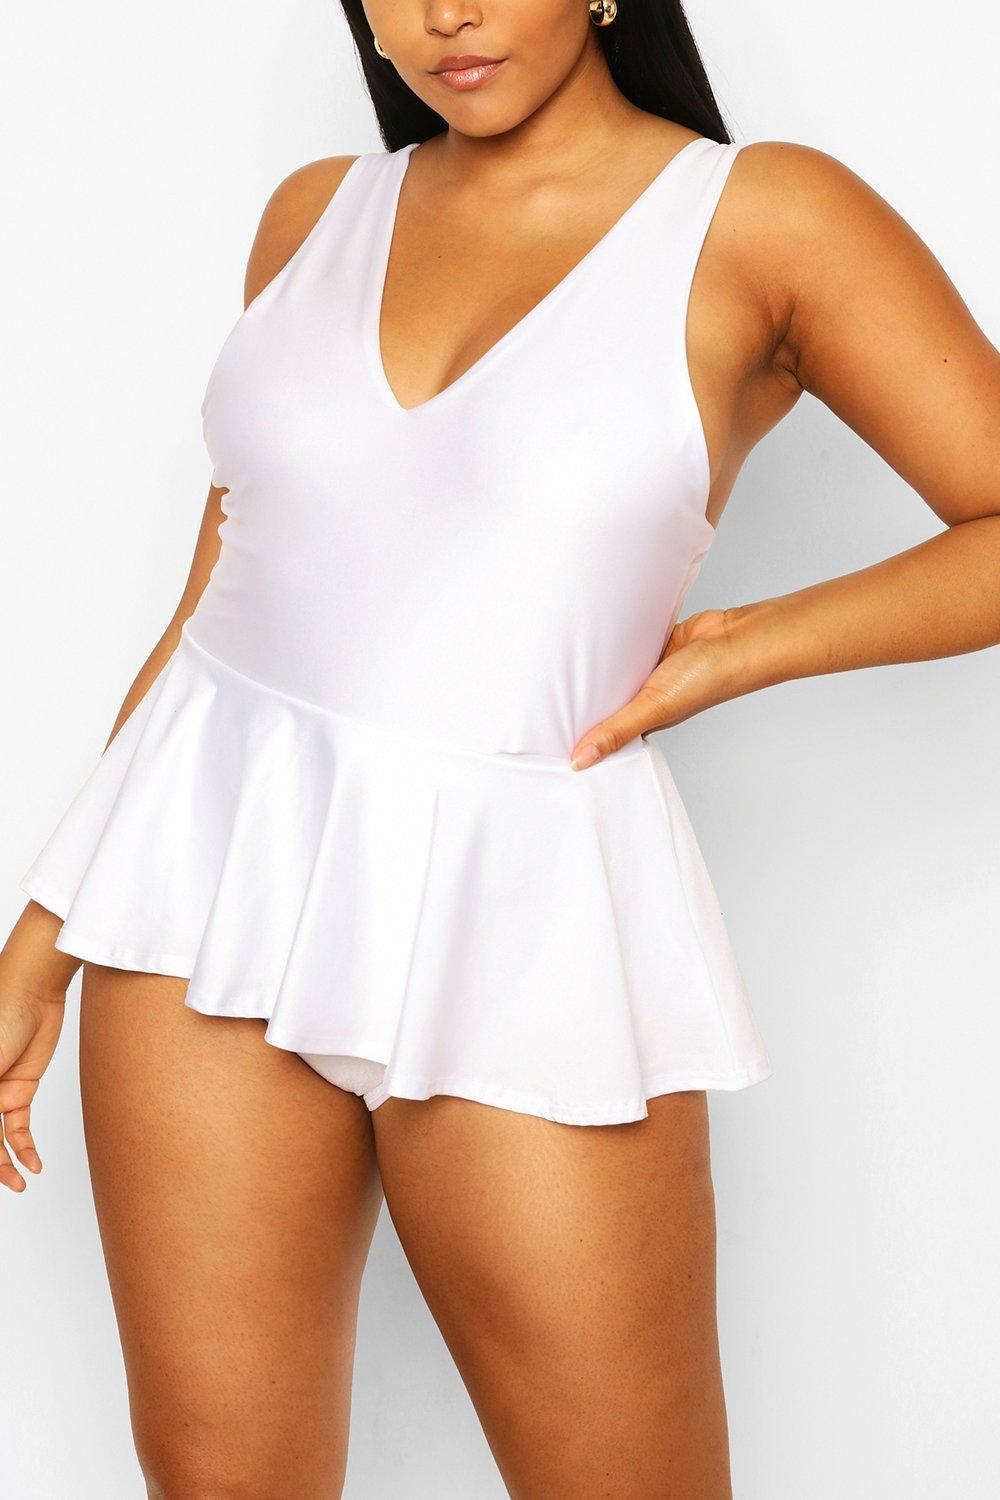 Easy as That Top Plus Lounge Set 7